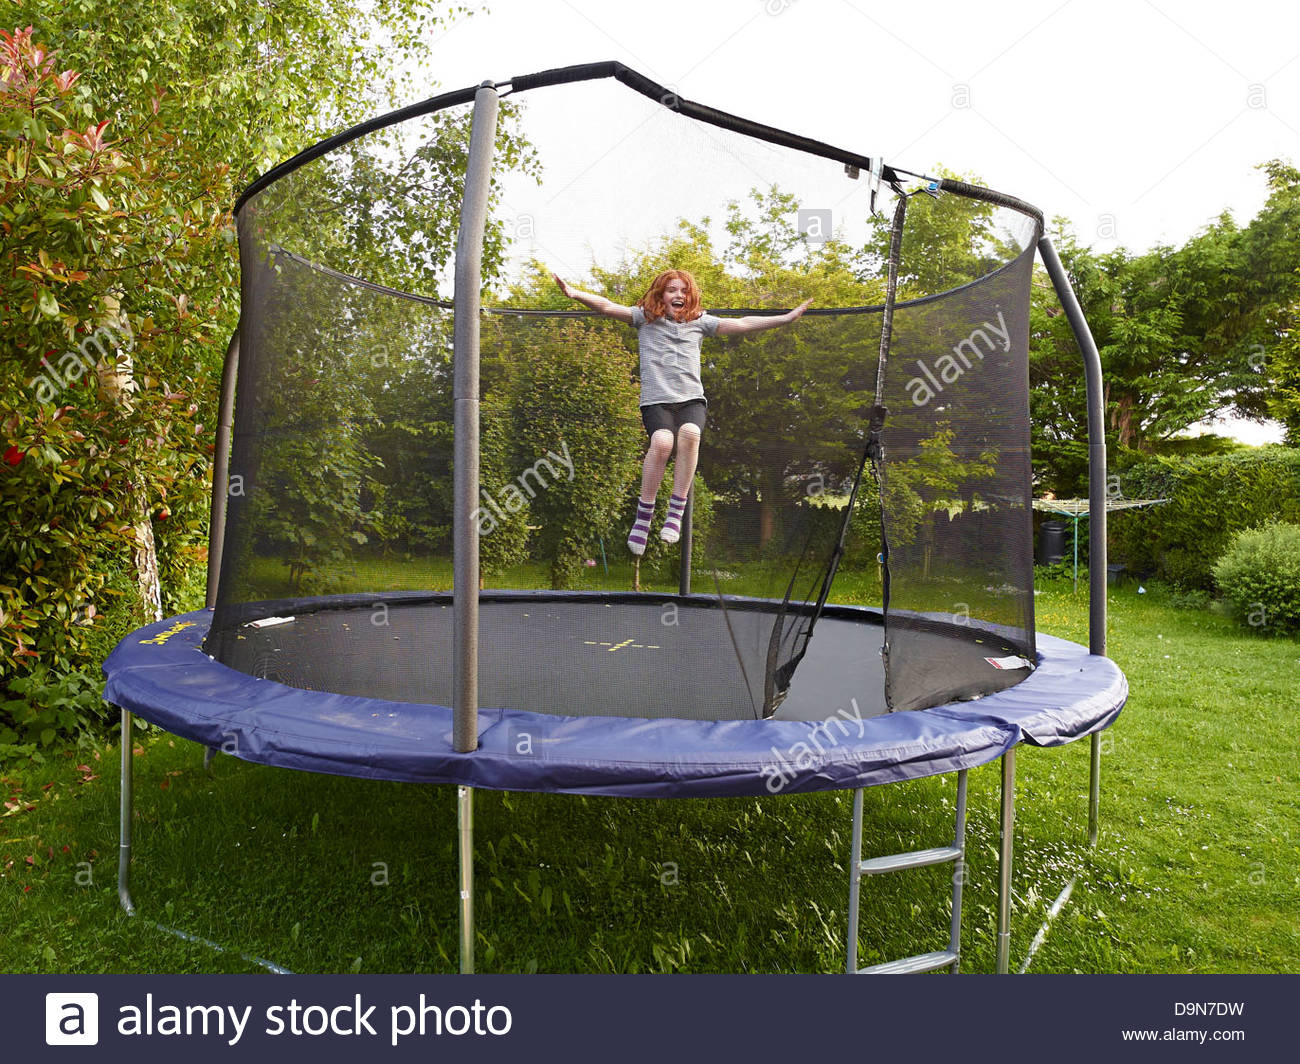 Young Girl Bouncing On A Garden Trampoline With A Safety Net At Dusk In The  Summer